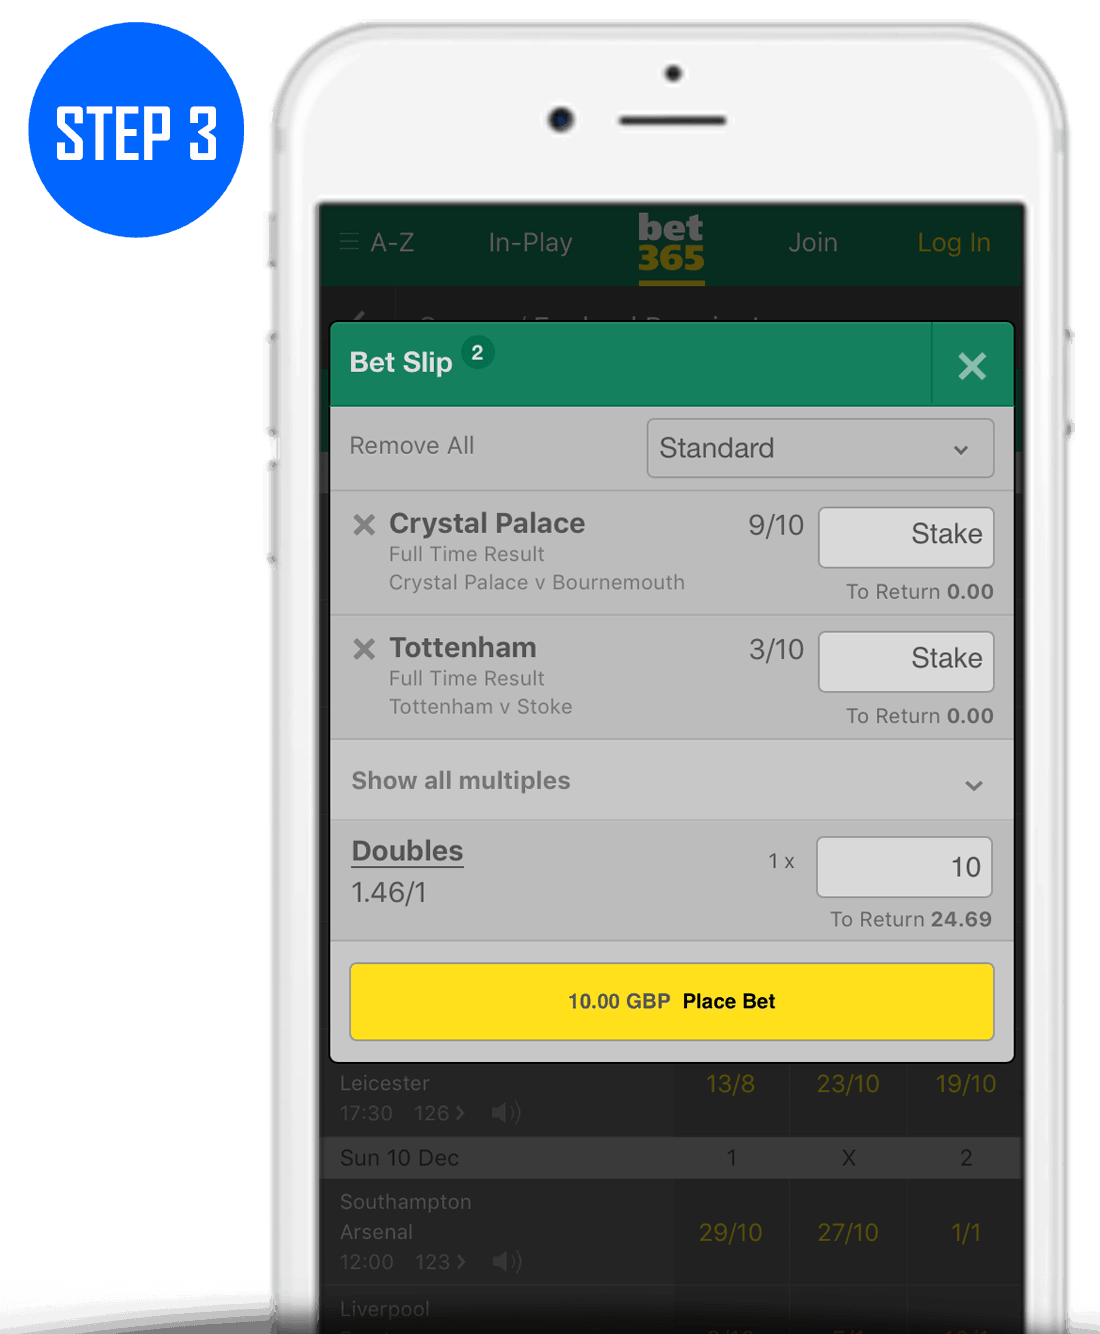 How To Place A Double Bet Step 3